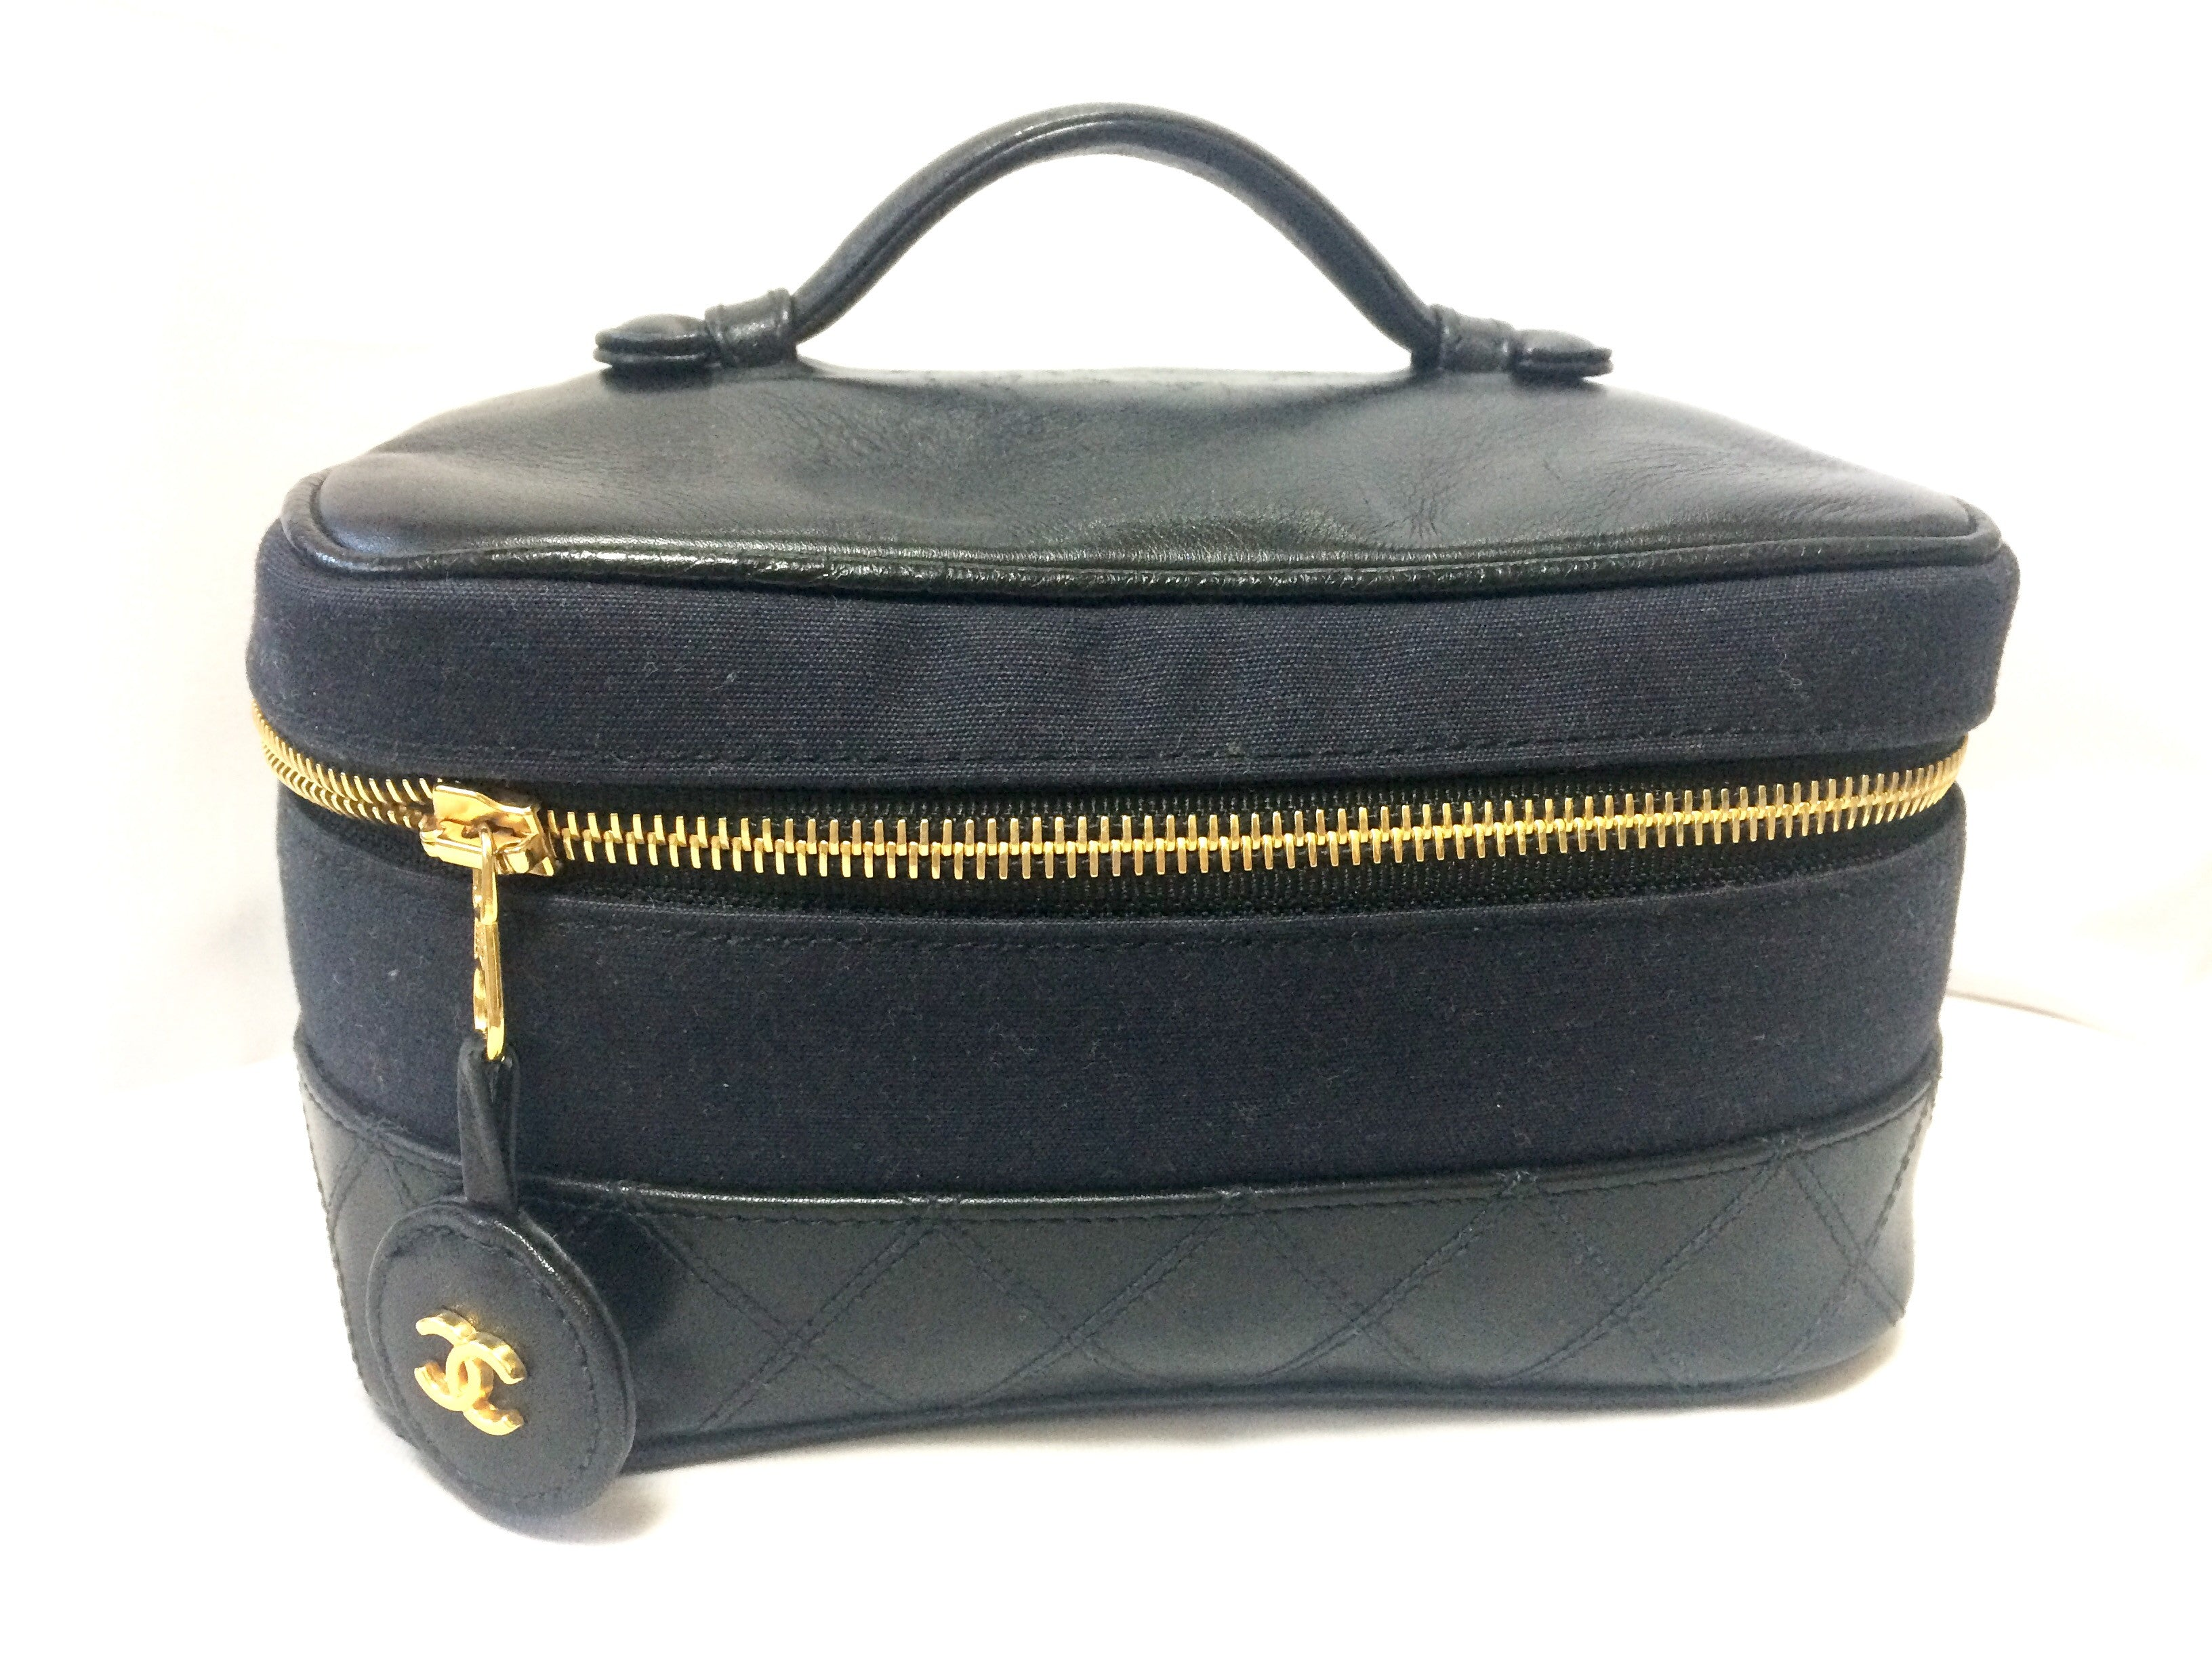 e4e815adbd78 Vintage CHANEL black leather and canvas combo classic cosmetic and toiletry  pouch